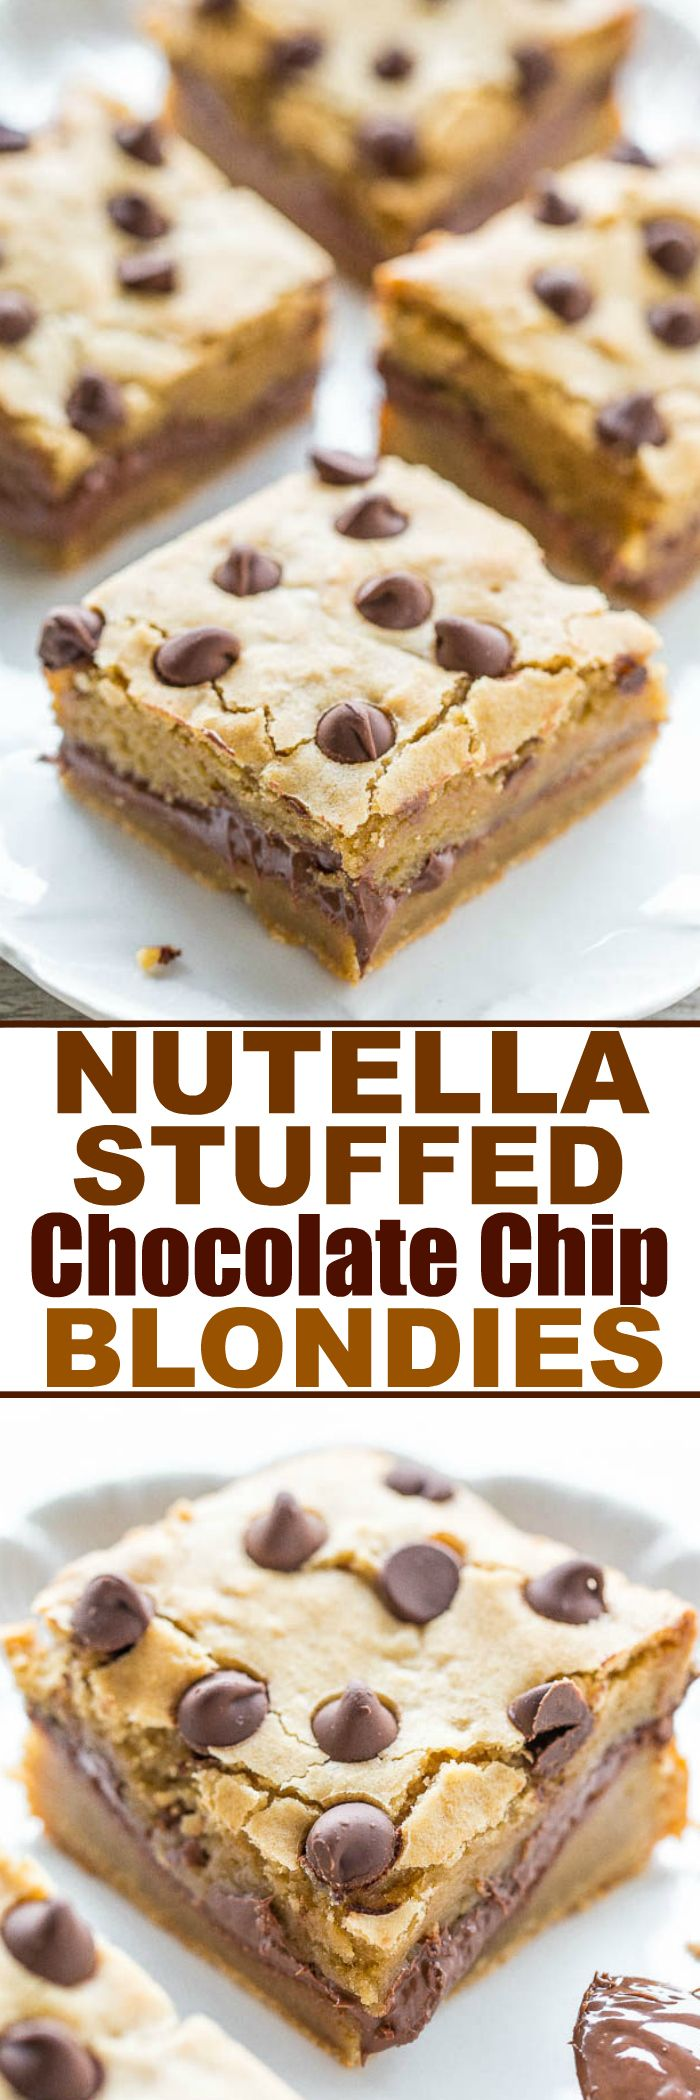 Nutella Topped Brownies Nutella Stuffed Chocolate Chip Blondies Recipe Chocolate Chip